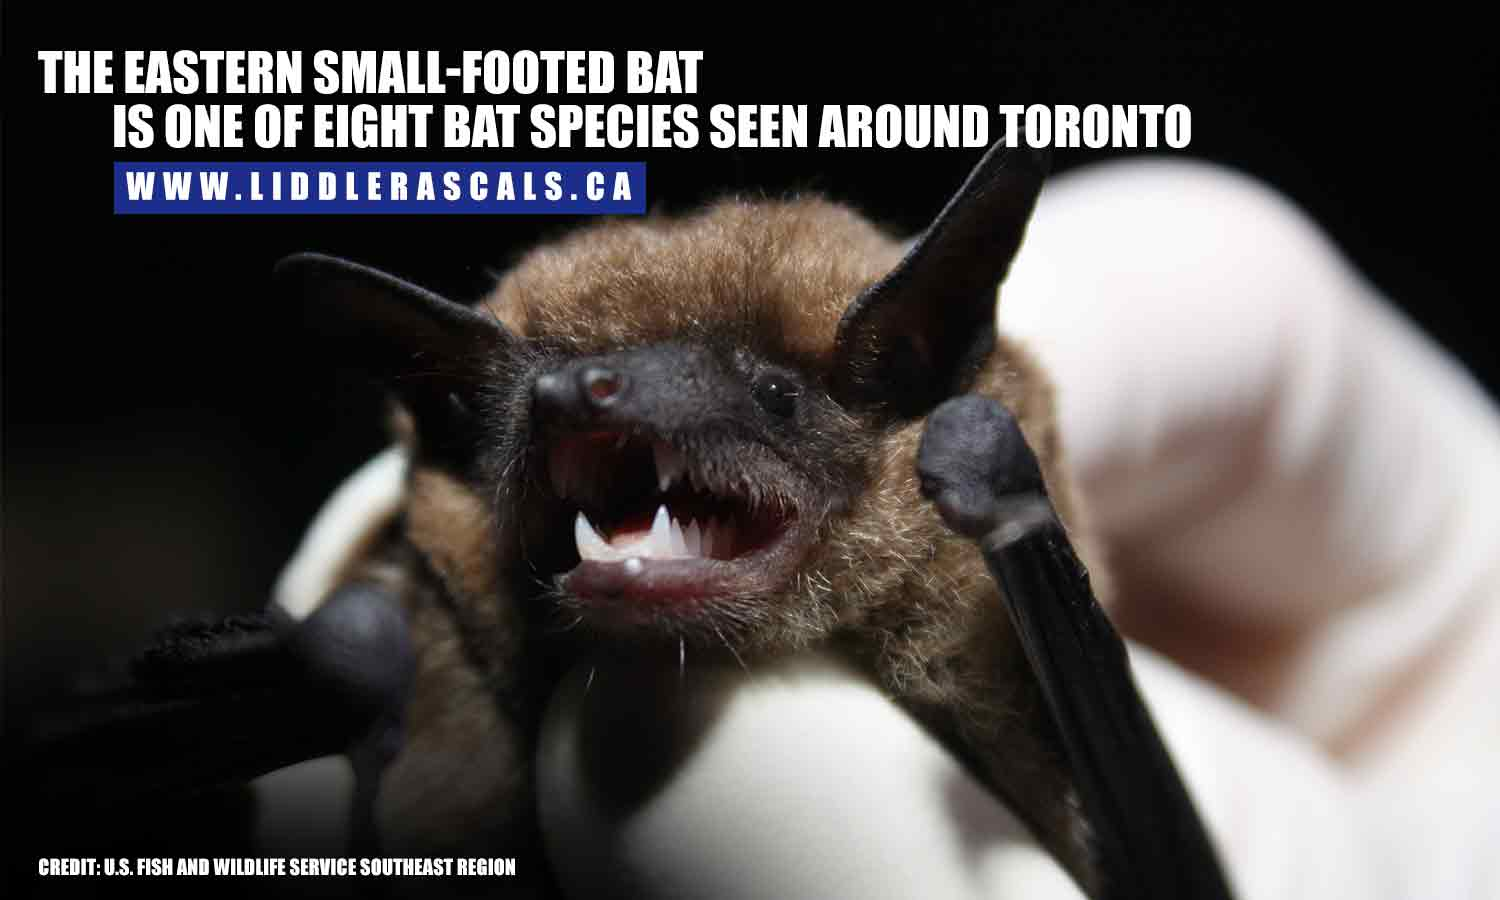 The Eastern small-footed bat is one of eight bat species seen around Toronto